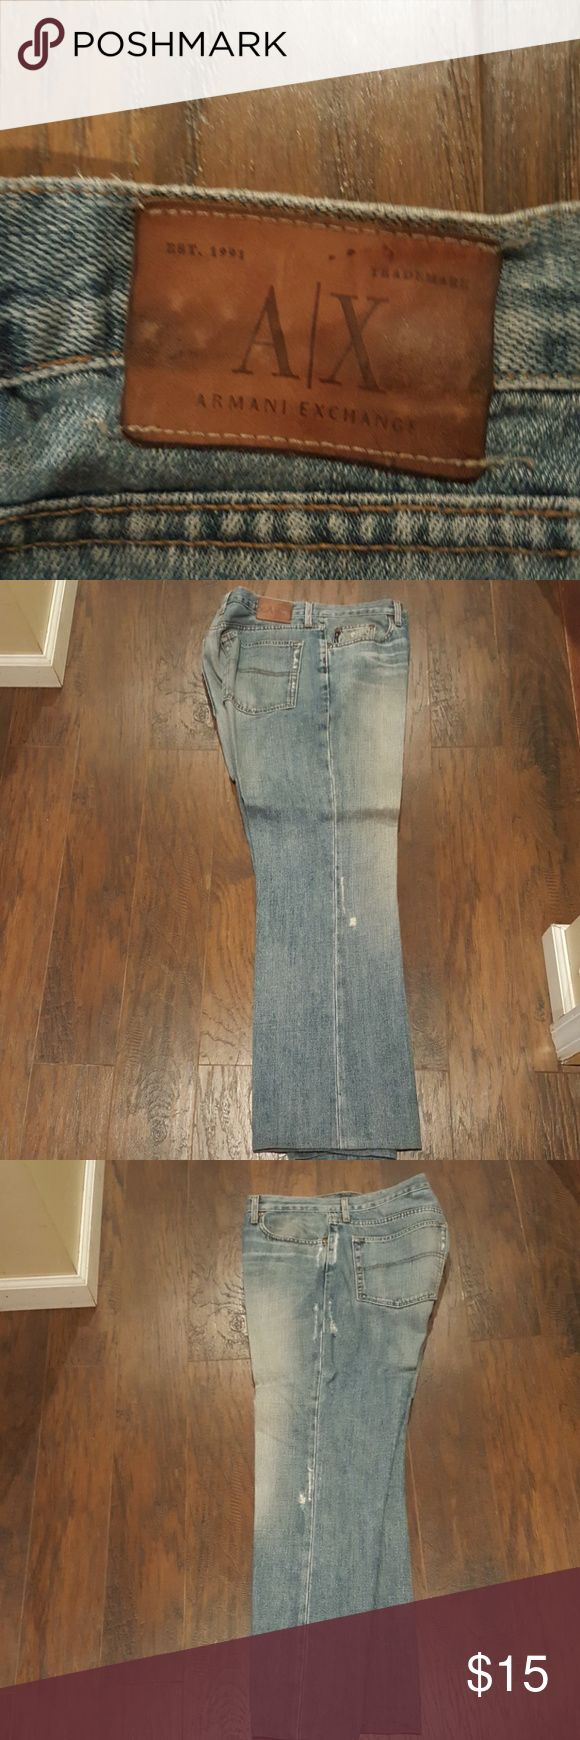 Armani Exchange Boot Cut Jeans Tag says 38in waist custom altered to a 31.2 inseam. Pants have also been altered to fit a 36 in waist.  Distressed Look. Already pressed, ready to wear! Armani Exchange Jeans Bootcut